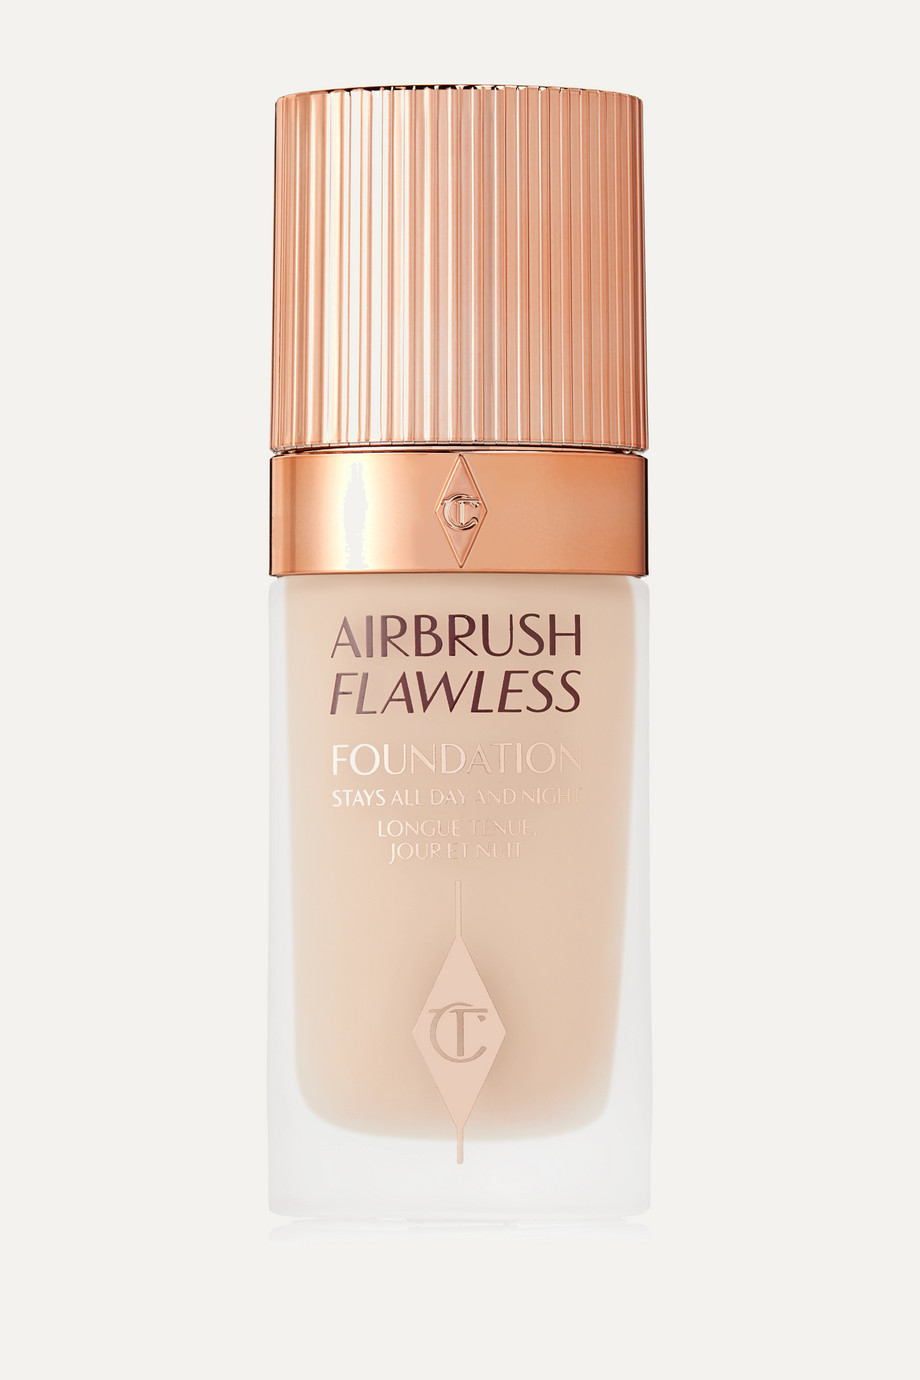 Charlotte Tilbury Airbrush Flawless Finish Foundation - 1 Neutral